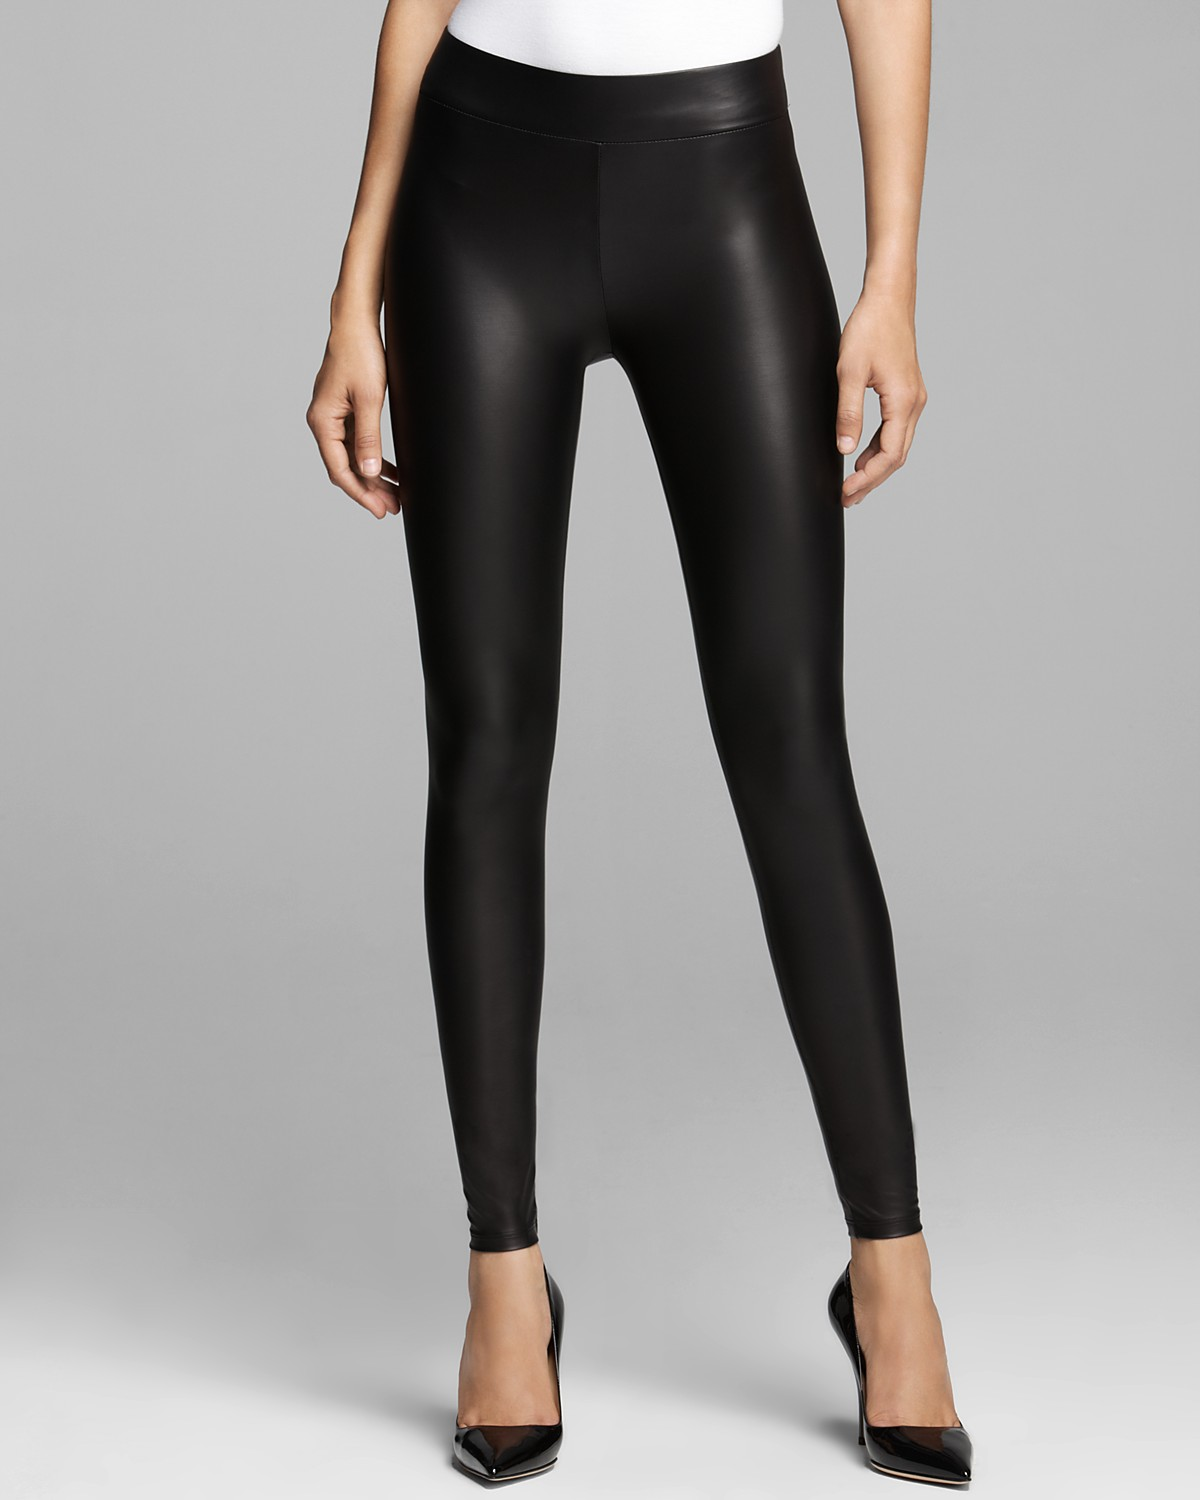 GUESS Leggings - Matte Faux Leather | Bloomingdale's